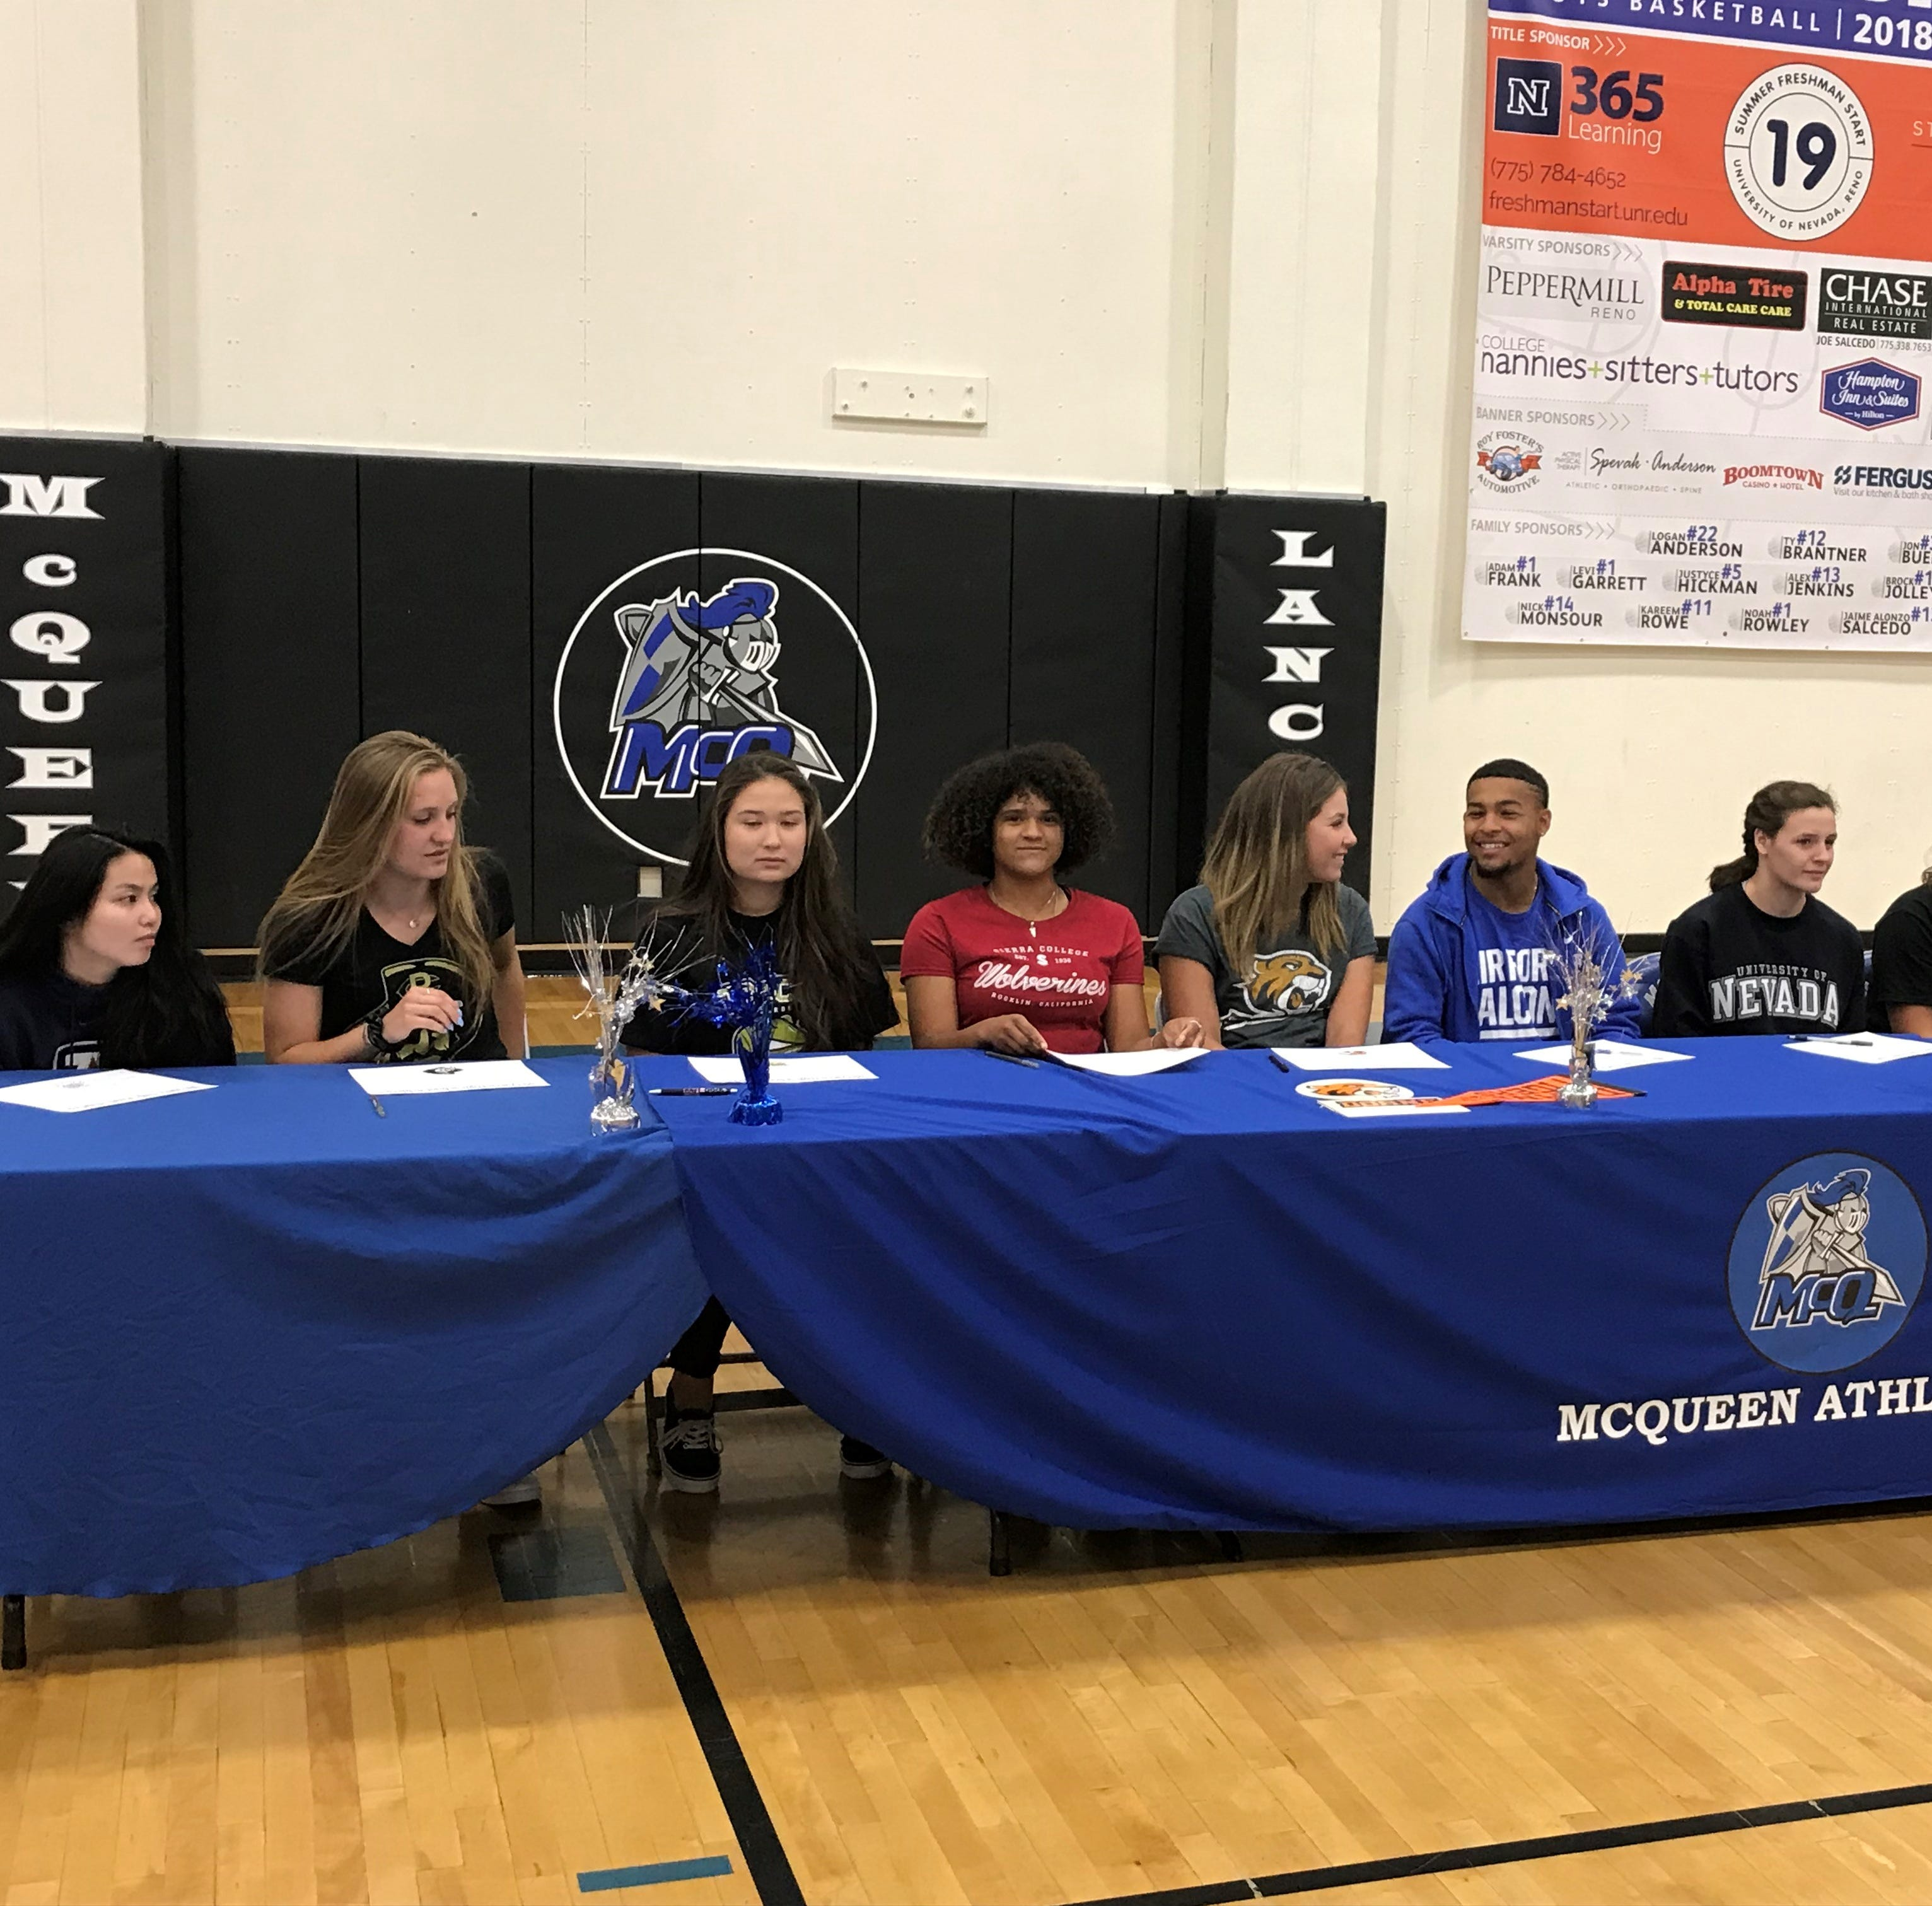 Williams not among prep standouts signing for college; Reed, McQueen athletes sign